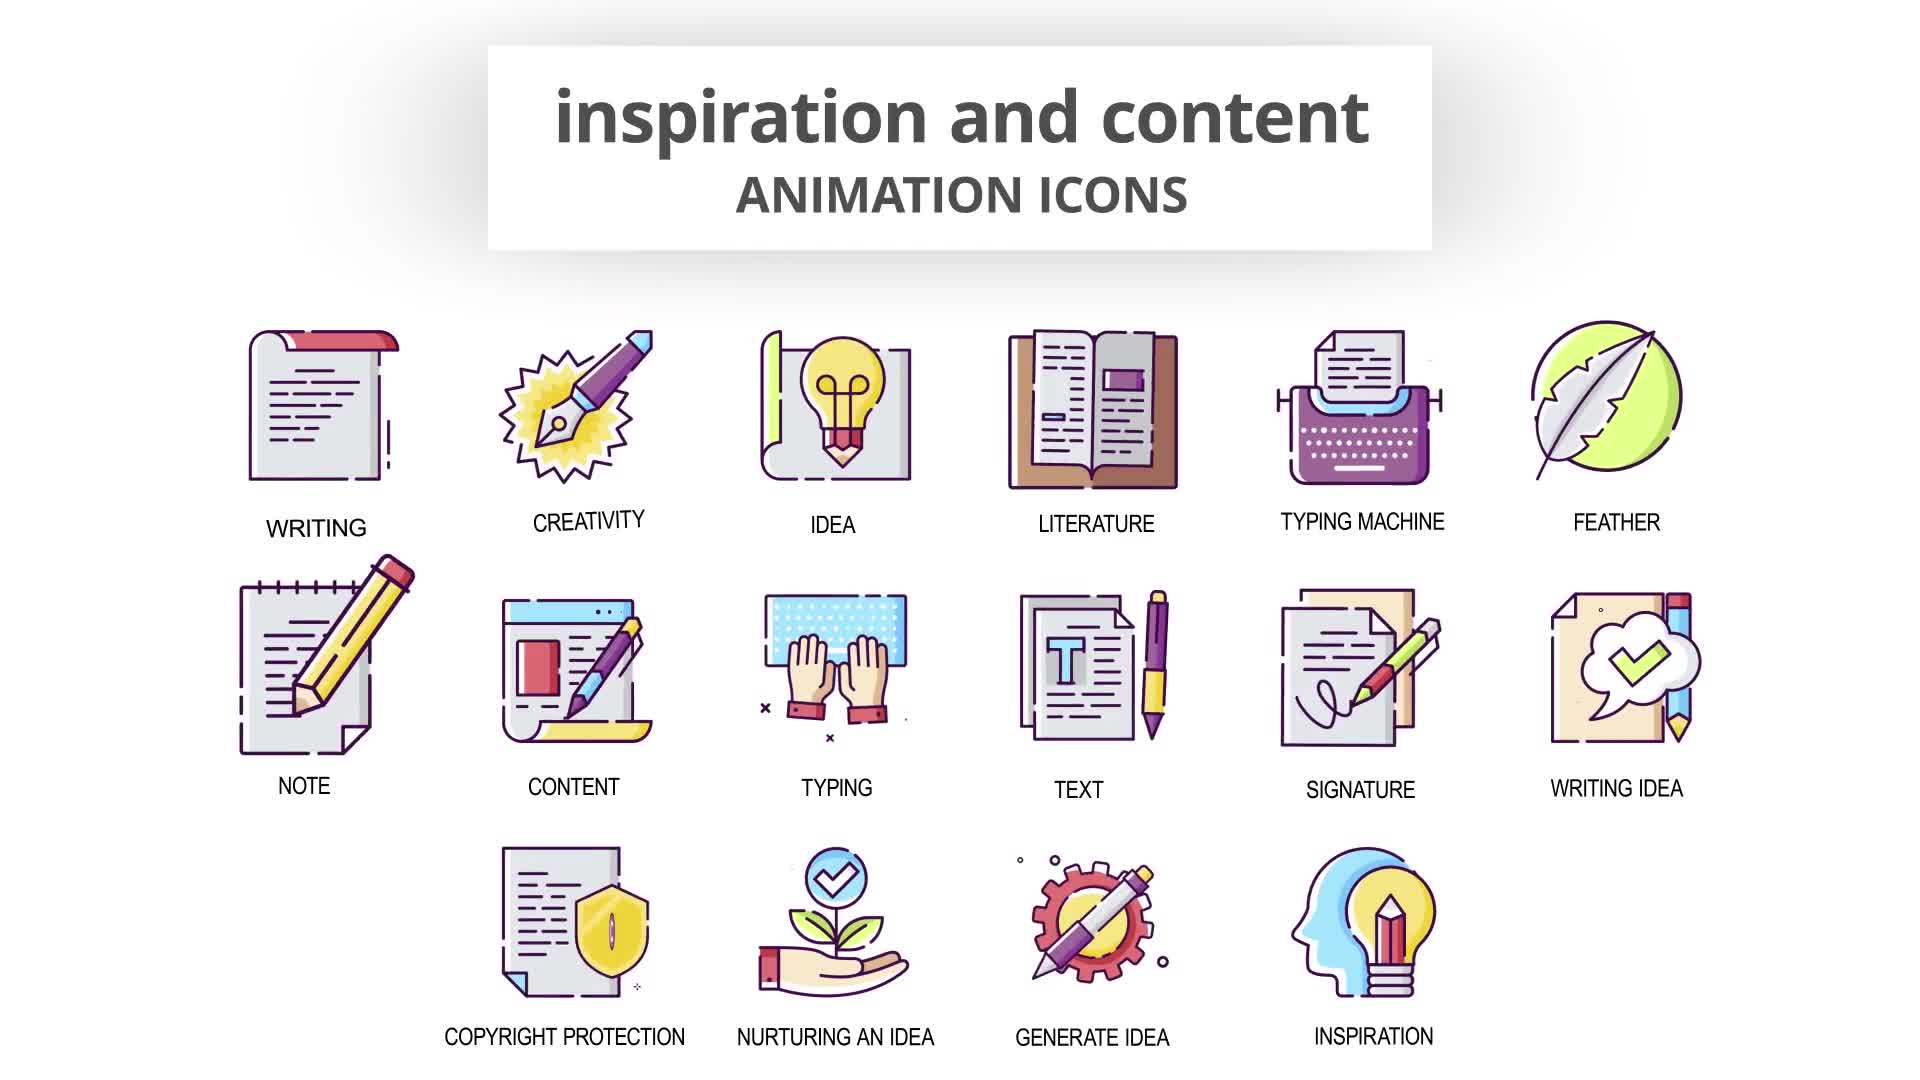 Inspiration & Content Animation Icons Videohive 30041554 After Effects Image 8